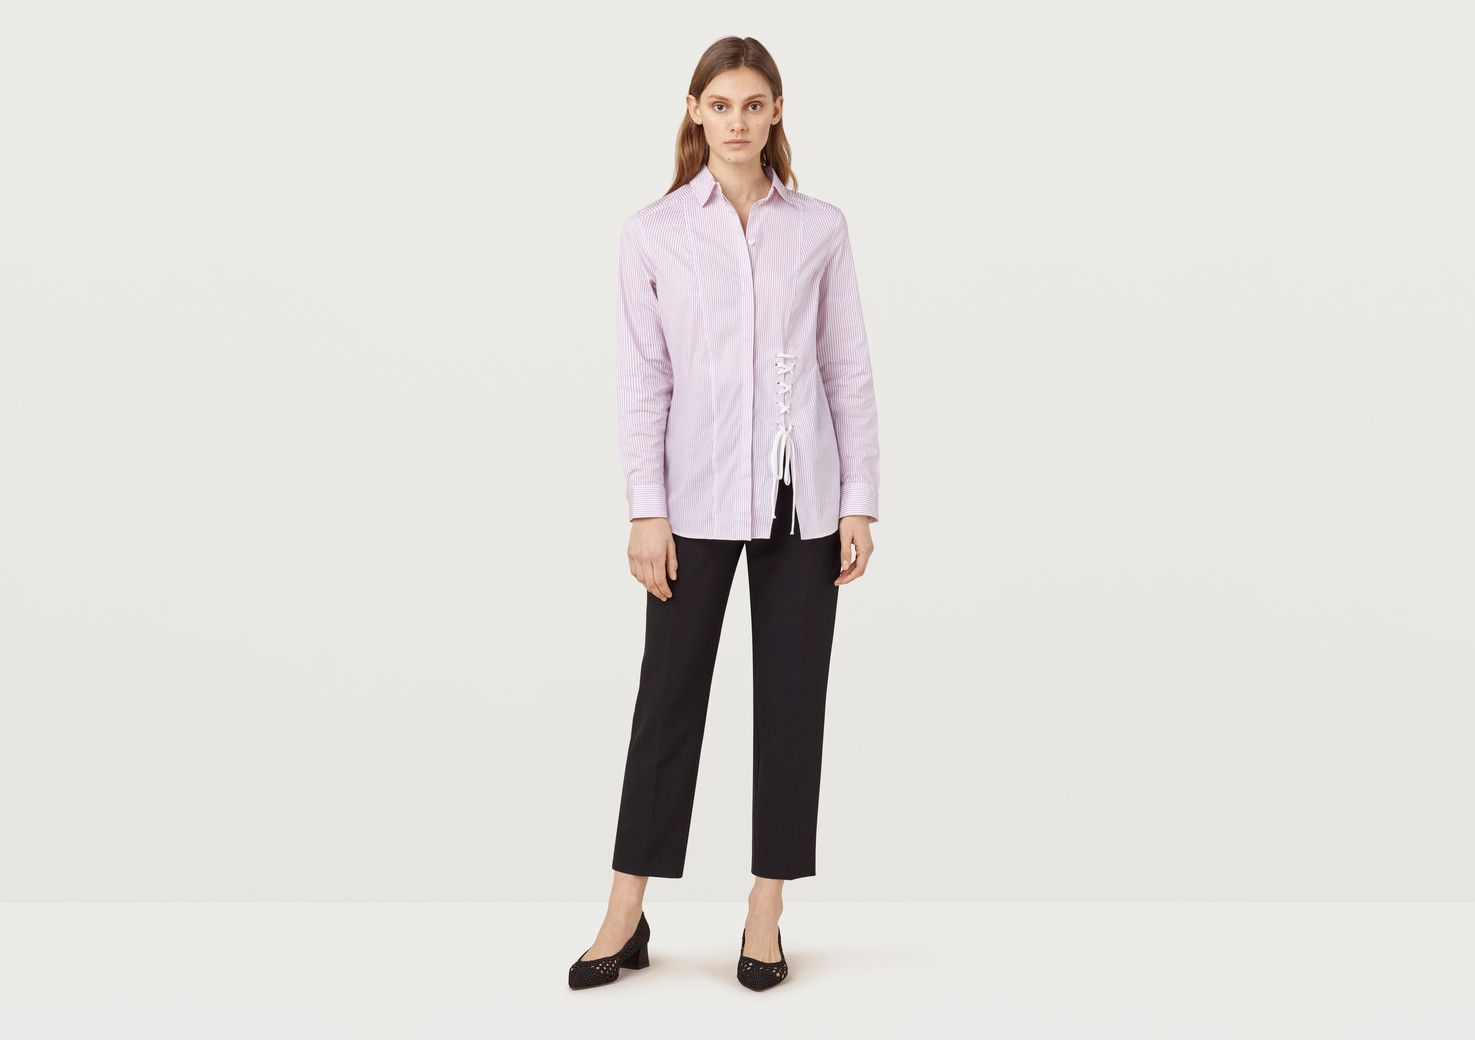 Grainger Pink And White Striped Shirt - multicolour